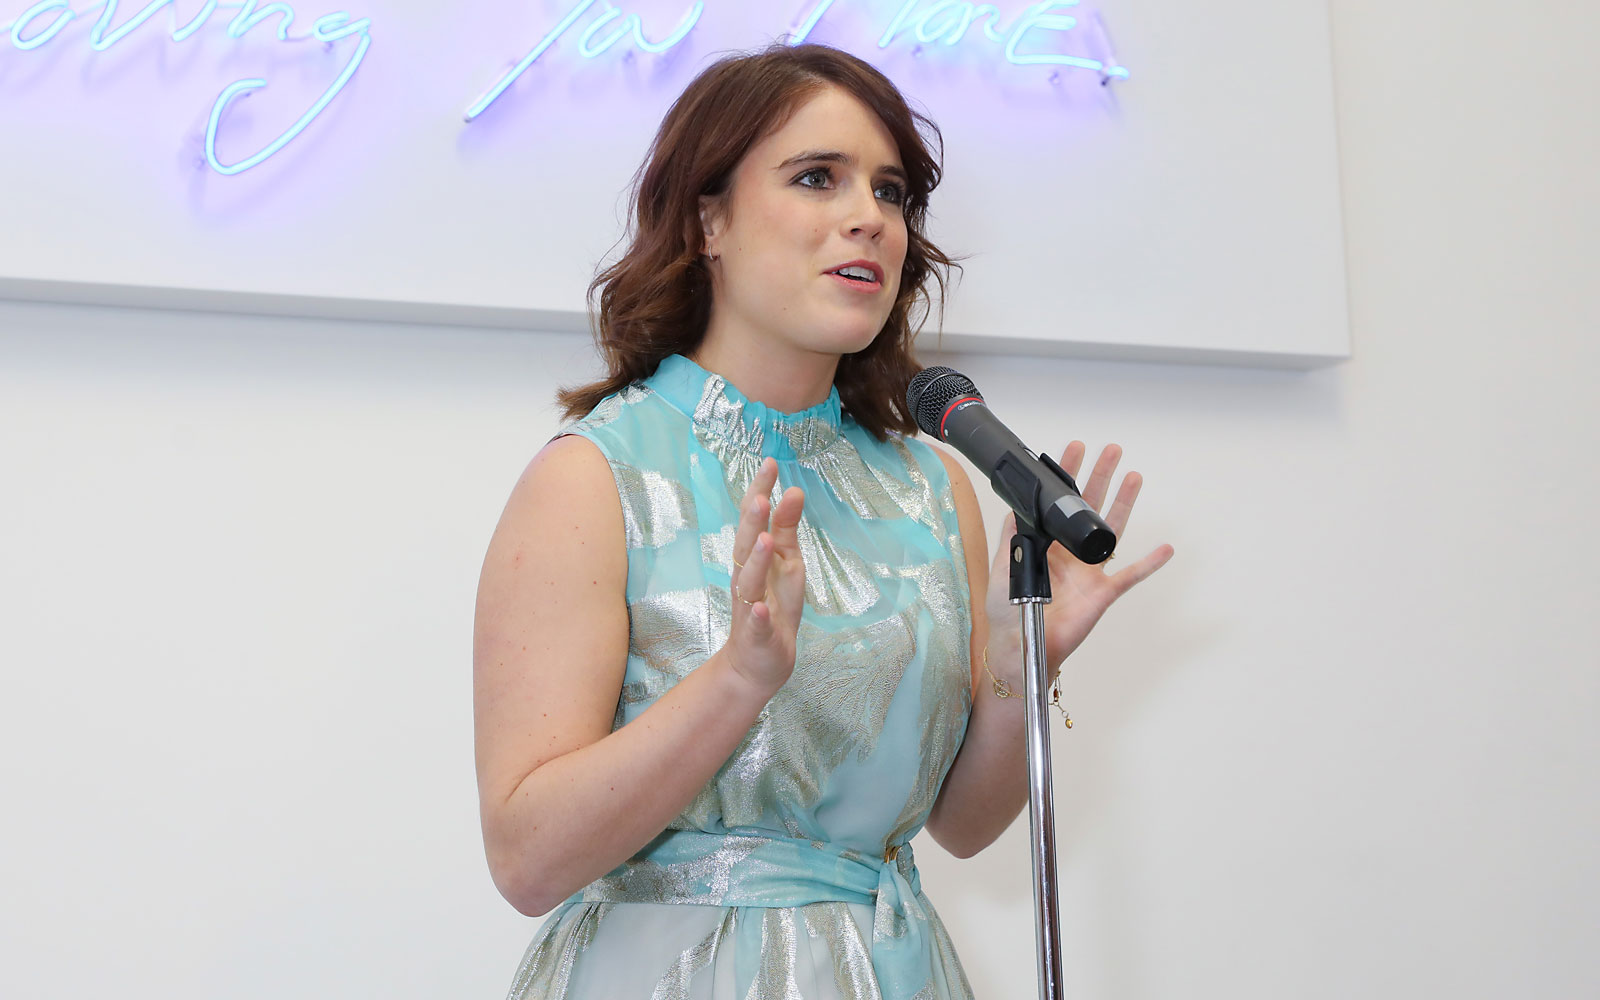 Princess Eugenie Is Launching the Royal Family's First-ever Podcast